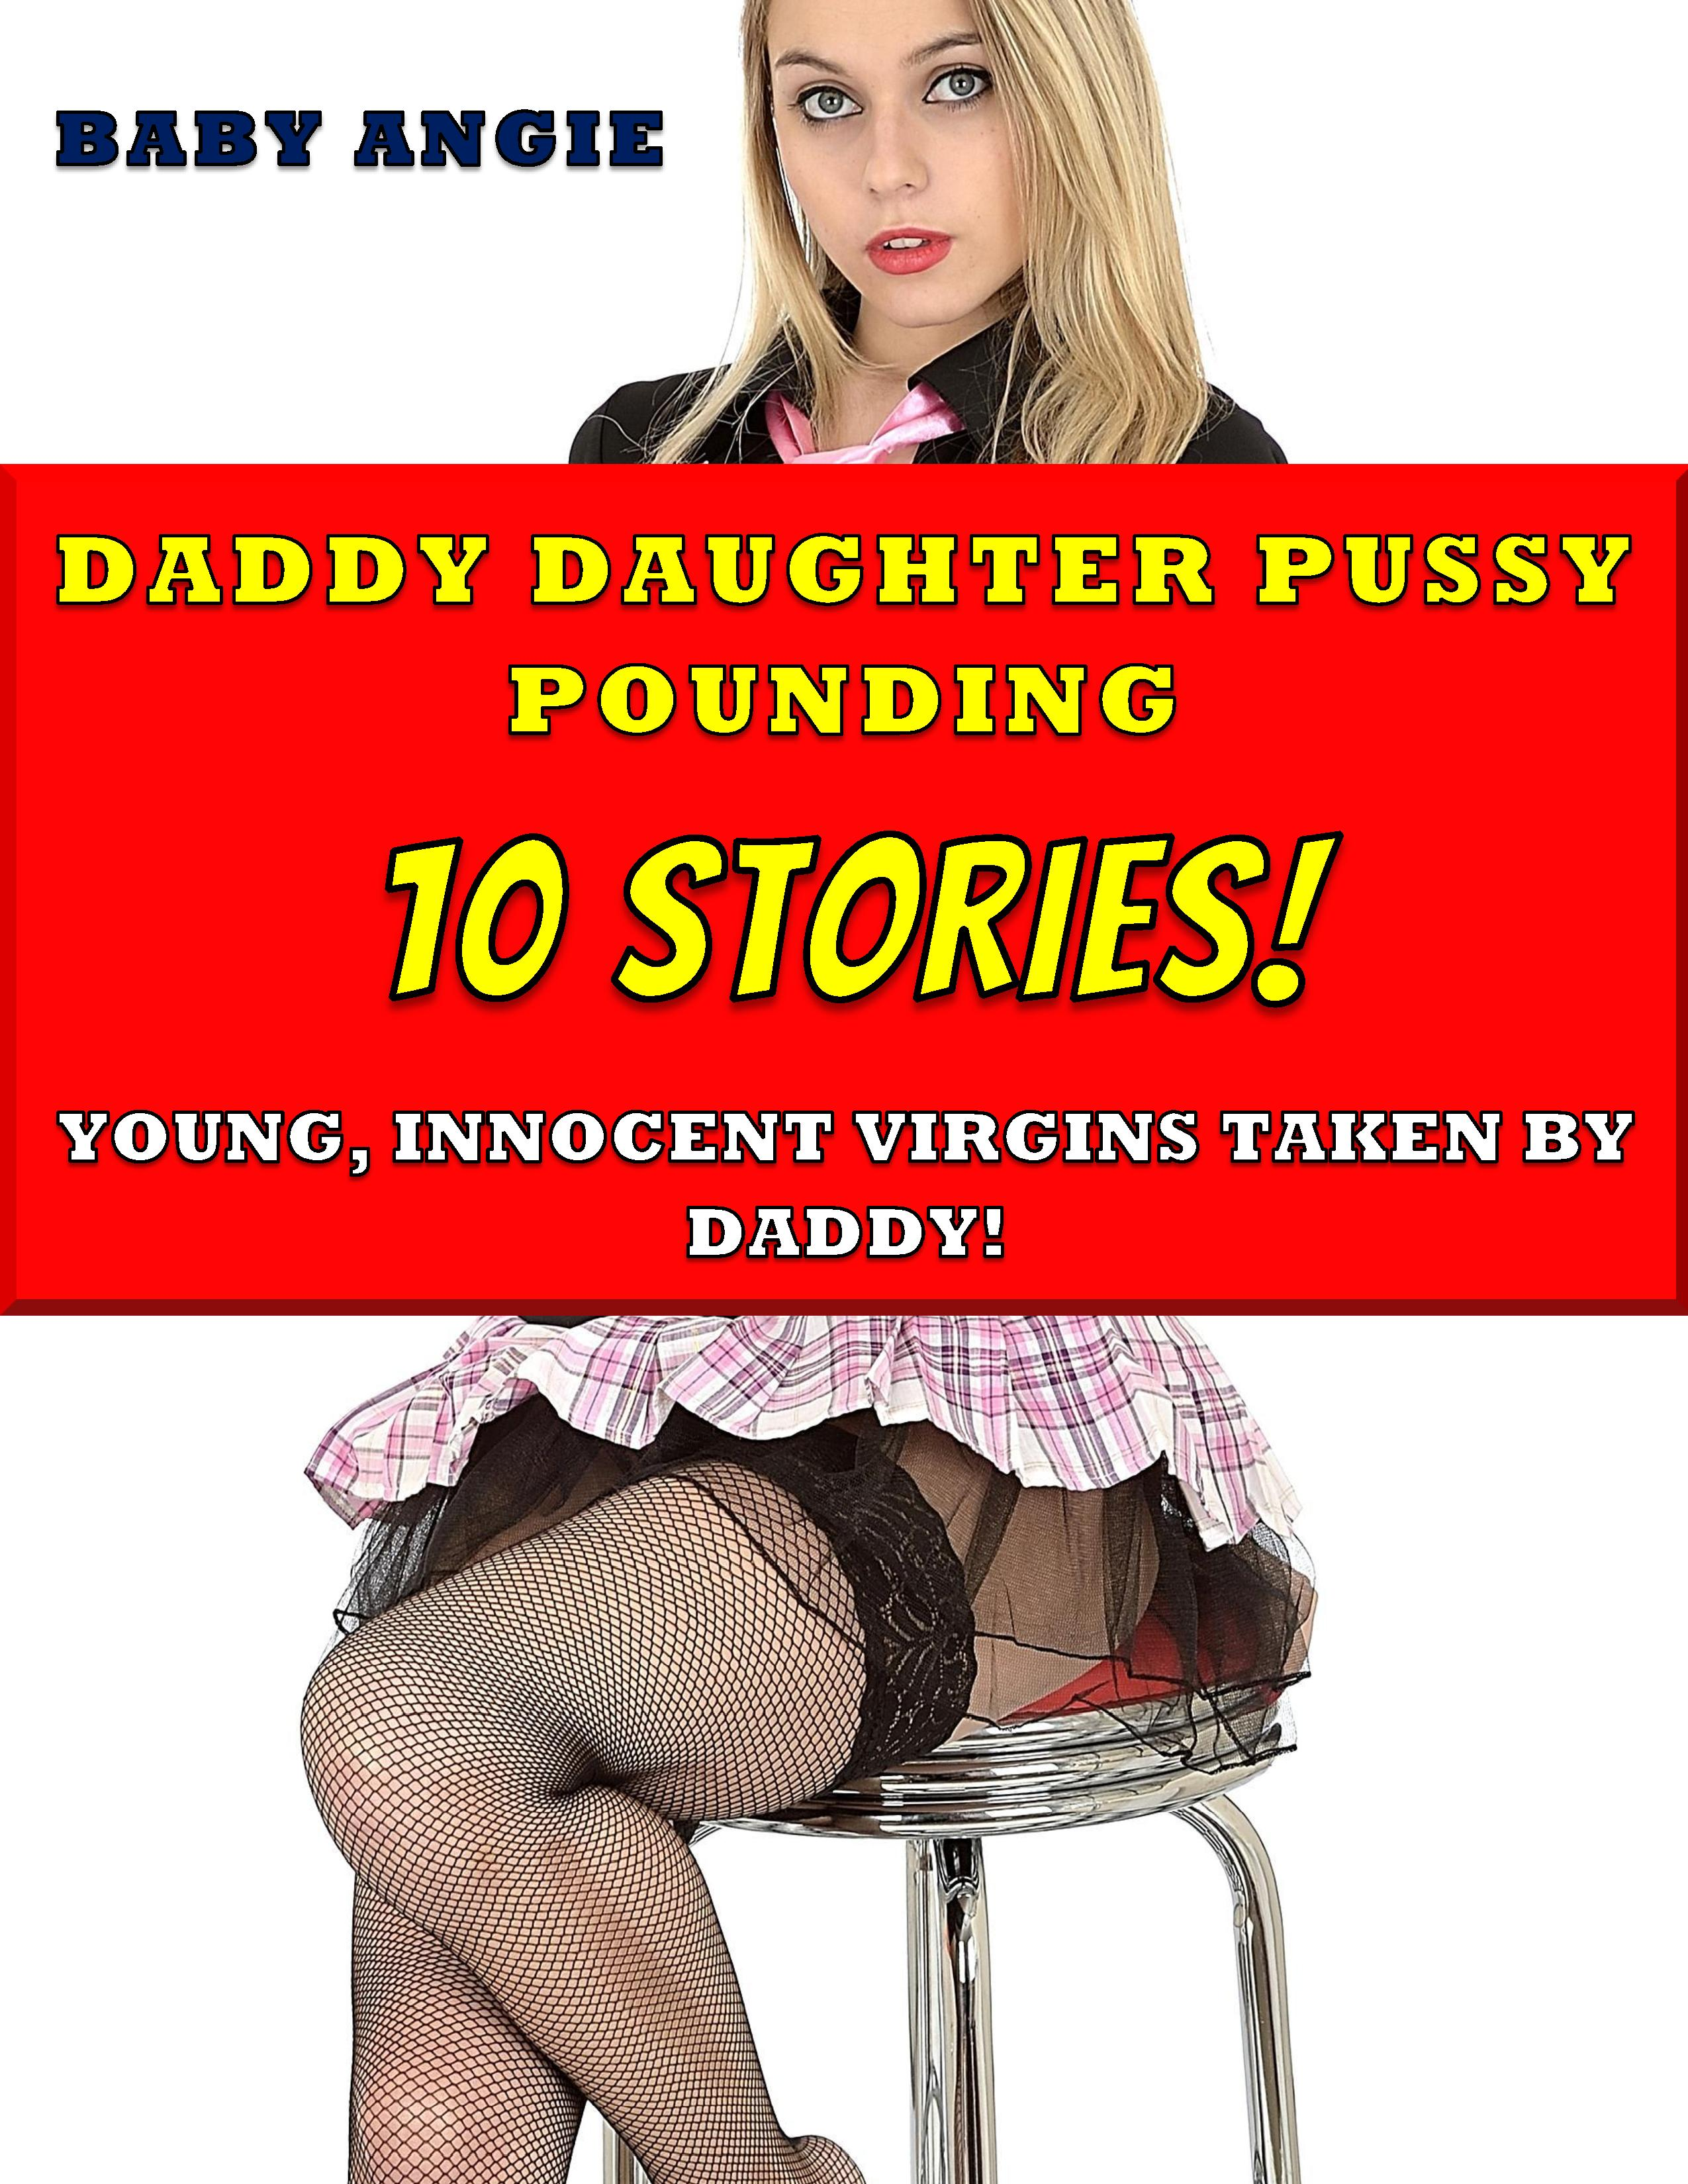 Impregnation Storys Best smashwords – daddy daughter pussy pounding impregnation 10 stories